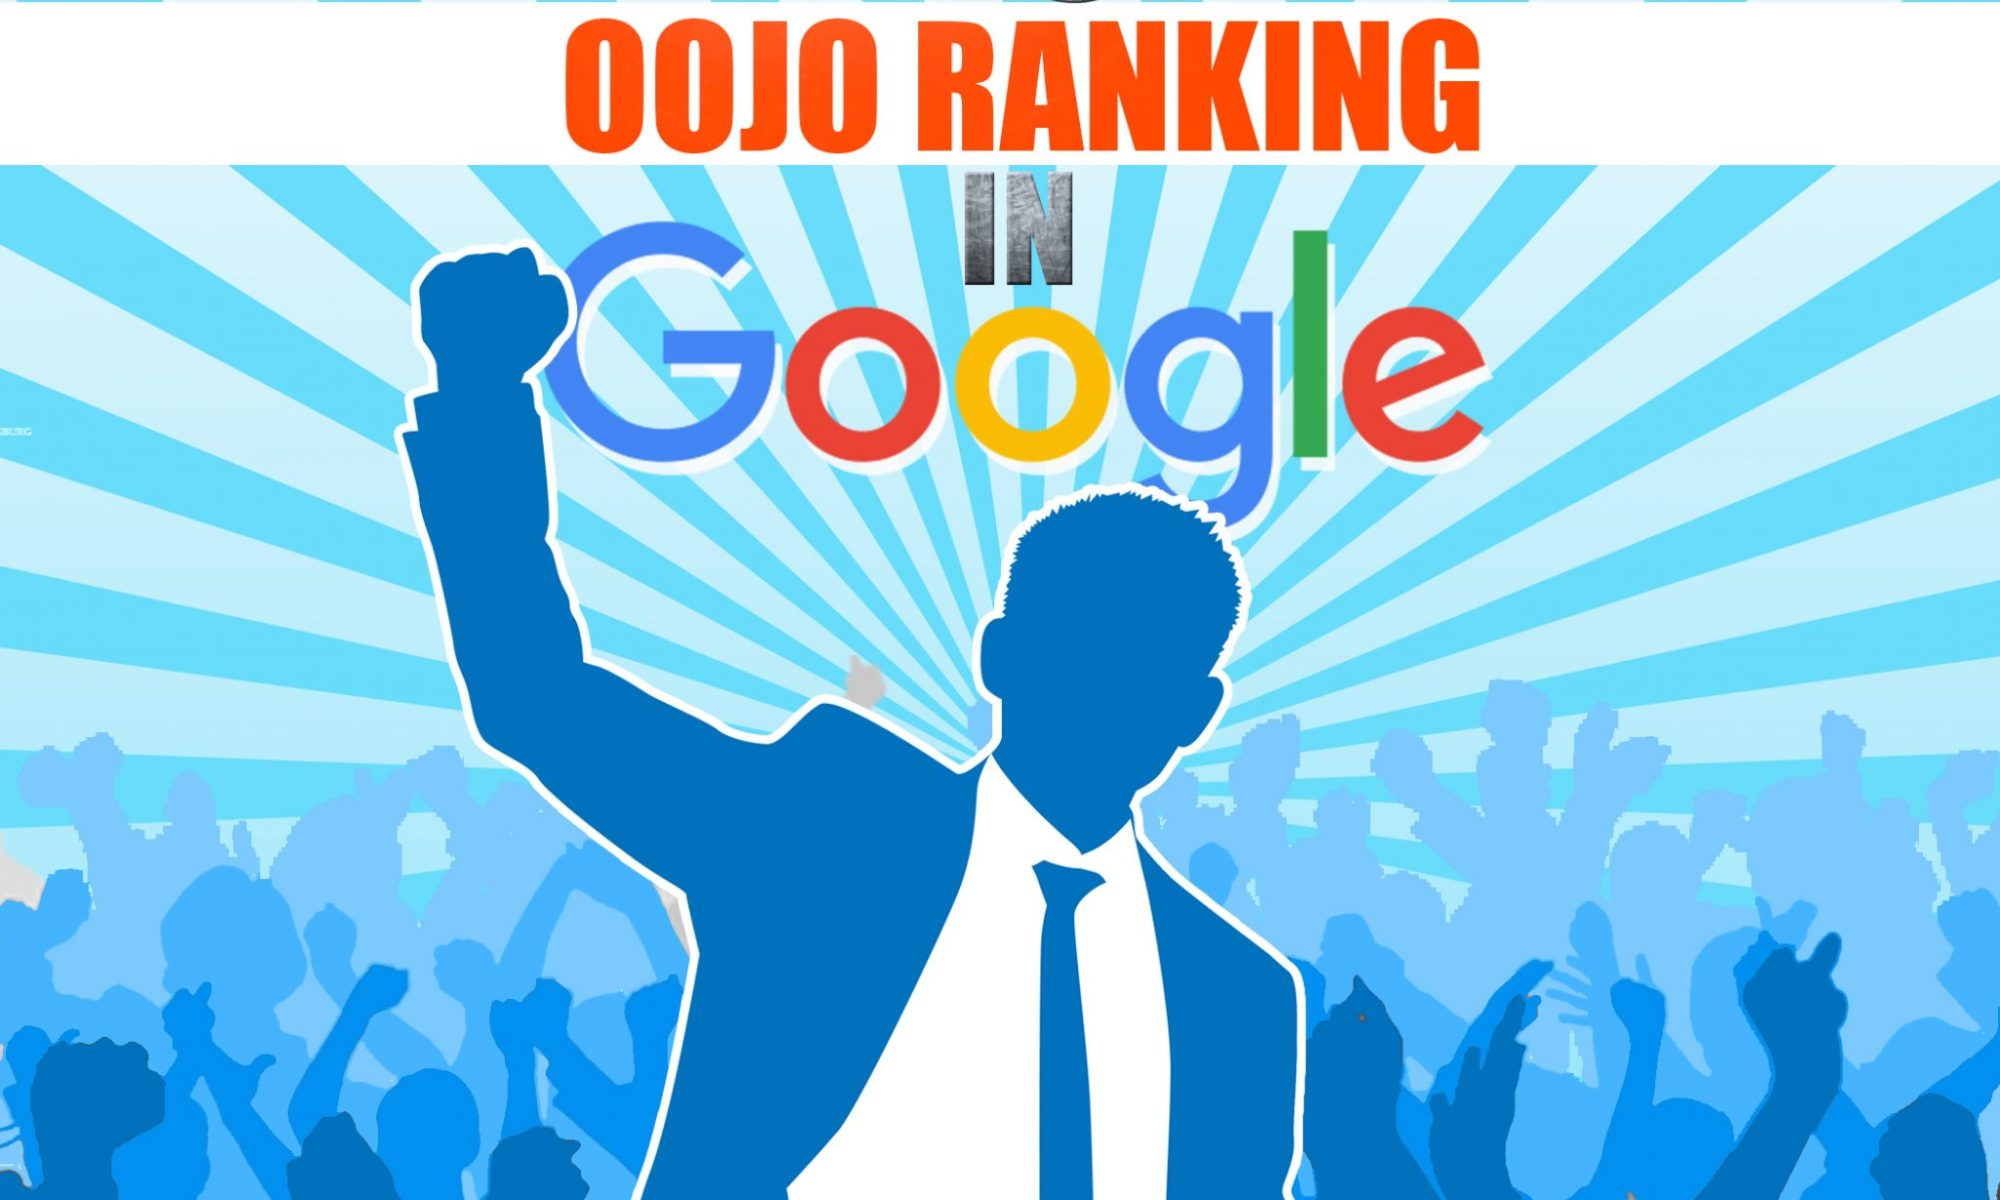 oojo ranked on Google's 1st Page by SEO & Digital Marketing Consultant Singapore, Timotheus Lee